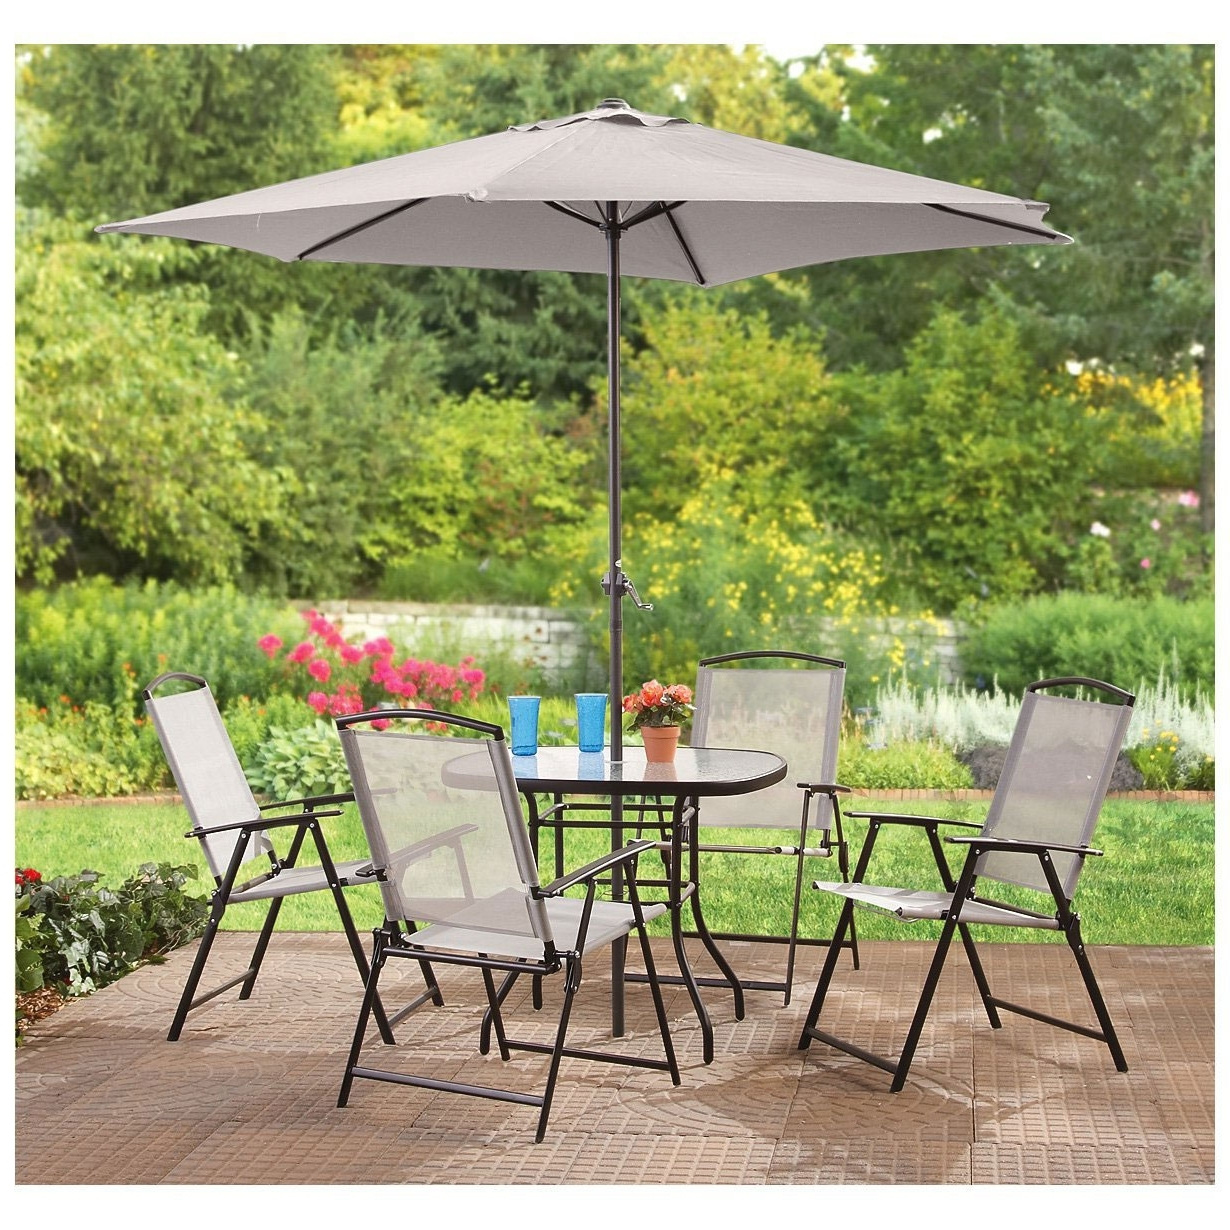 Round Outdoor Dining Table With Umbrella Patio Furniture Sets For 6 Intended For Famous Patio Dining Sets With Umbrellas (View 15 of 20)